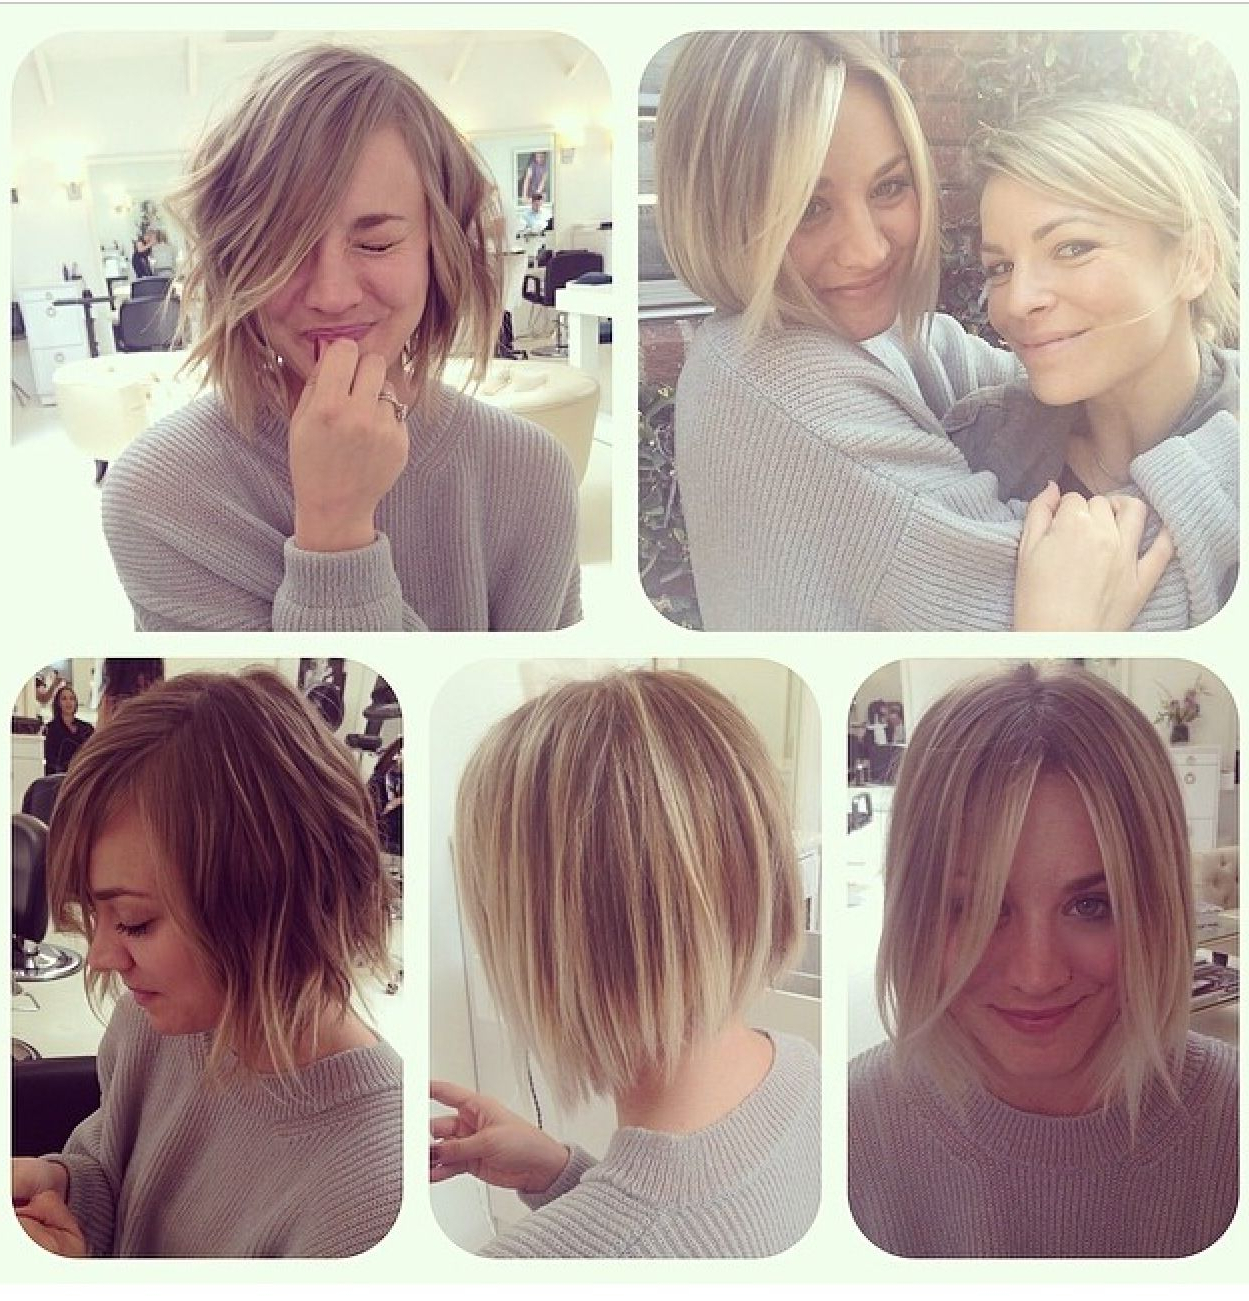 Kaley Cuoco, Bob Haircut | ¤>>Hair Obsession<<¤ In 2018 | Pinterest Intended For Kaley Cuoco New Short Haircuts (View 20 of 25)